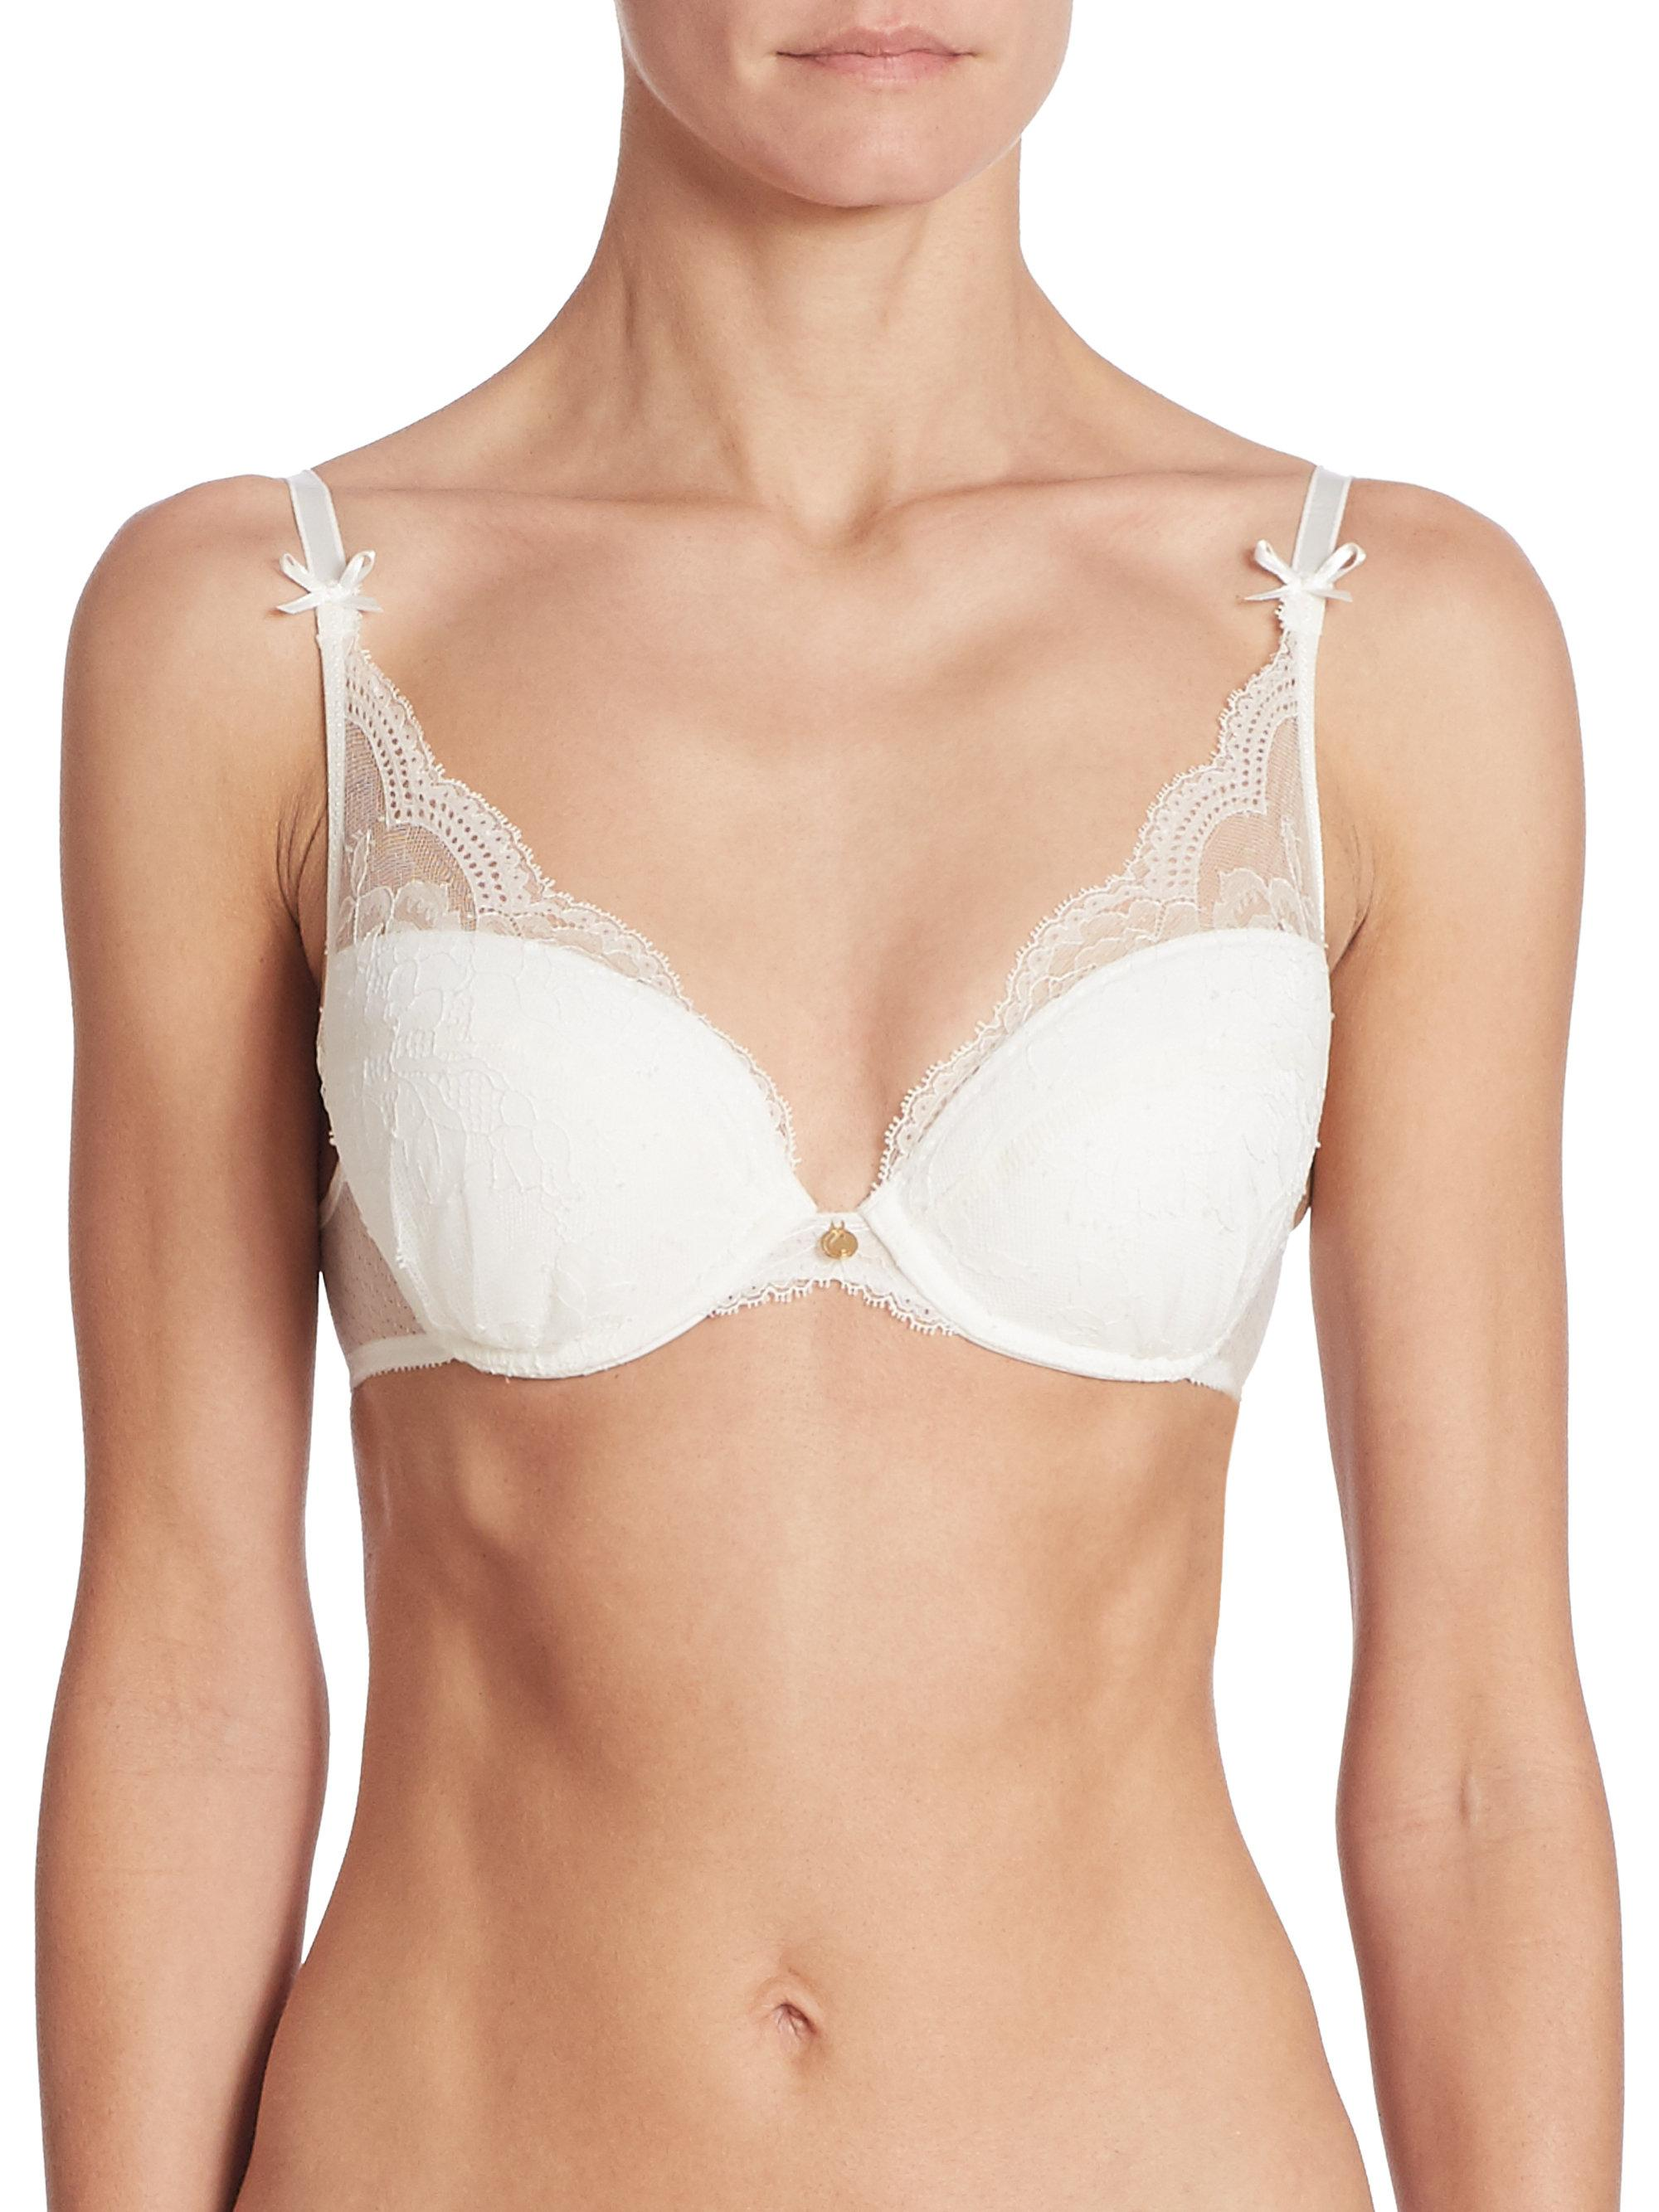 f3f0134ce4672 Chantelle Presage Lace Push-up Bra in White - Lyst